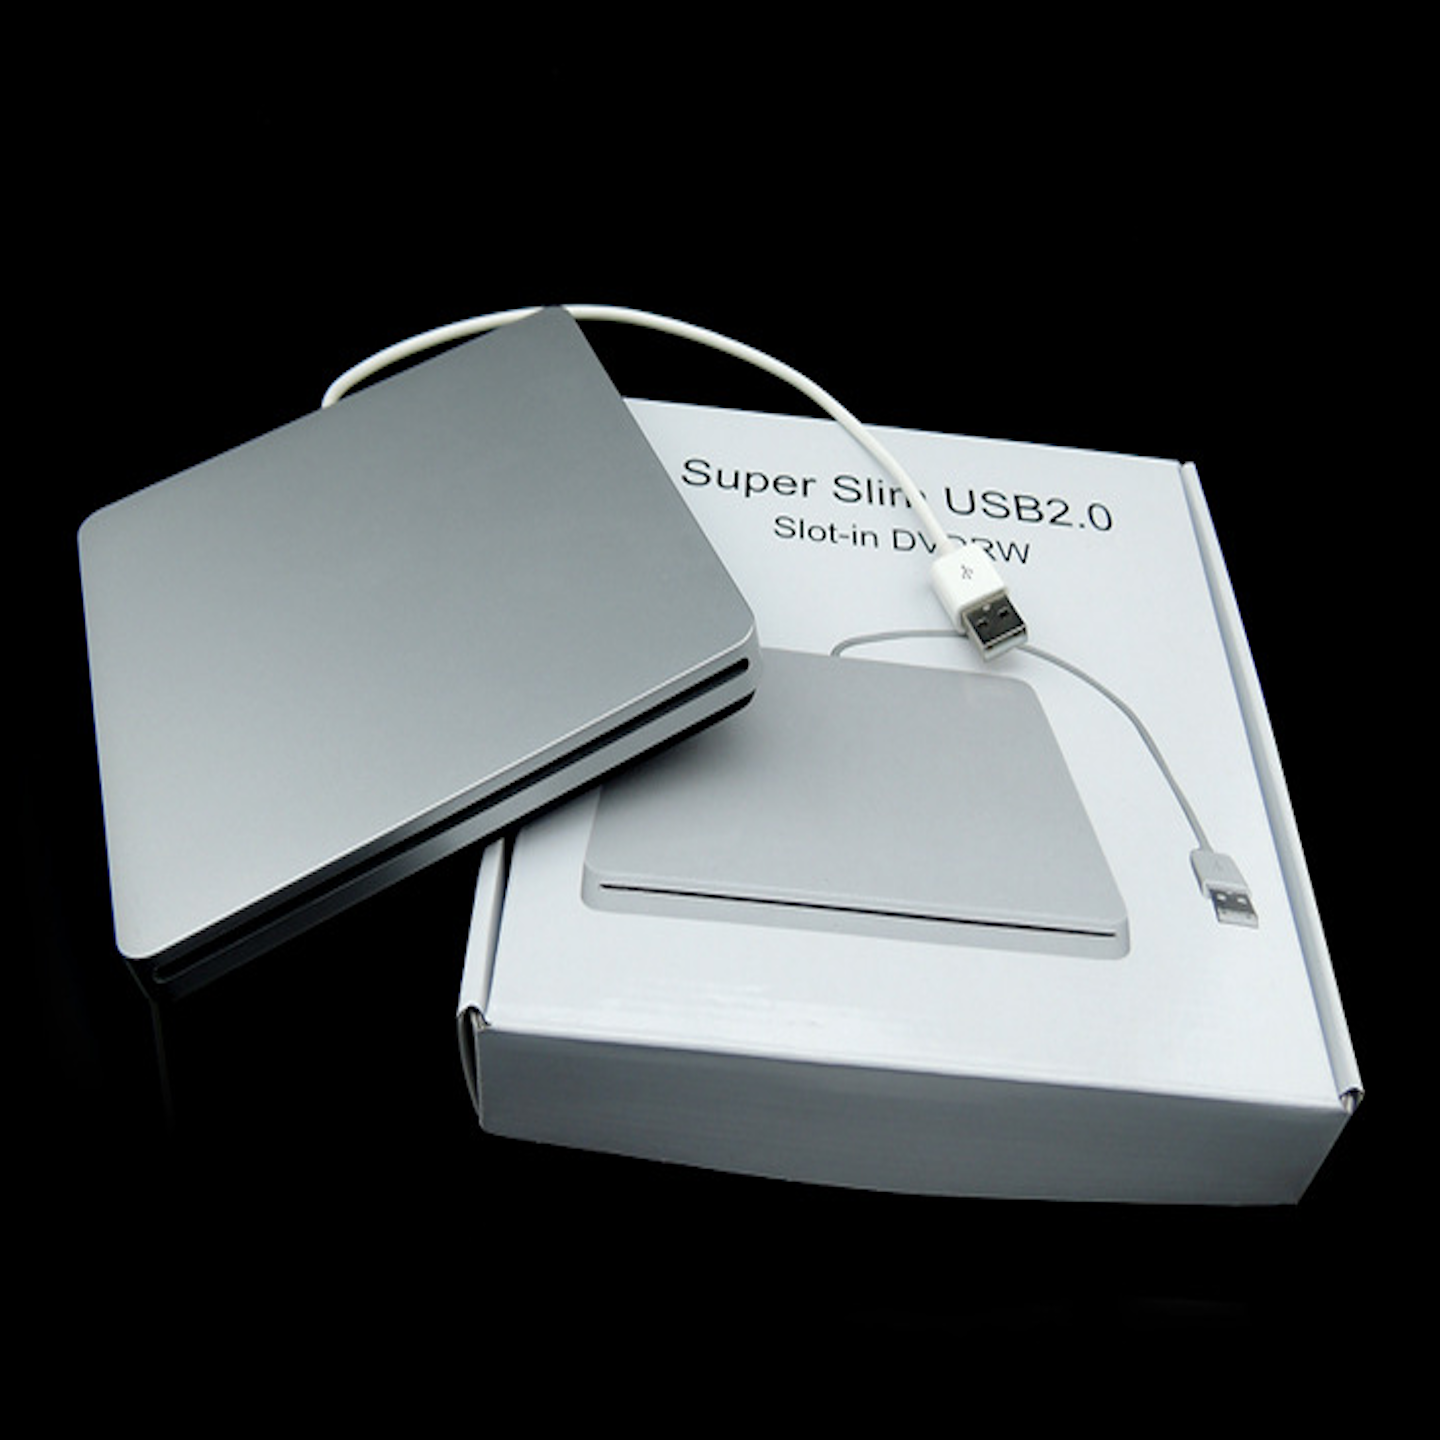 USB 2.0 External Drive & Drive Burner (Review)